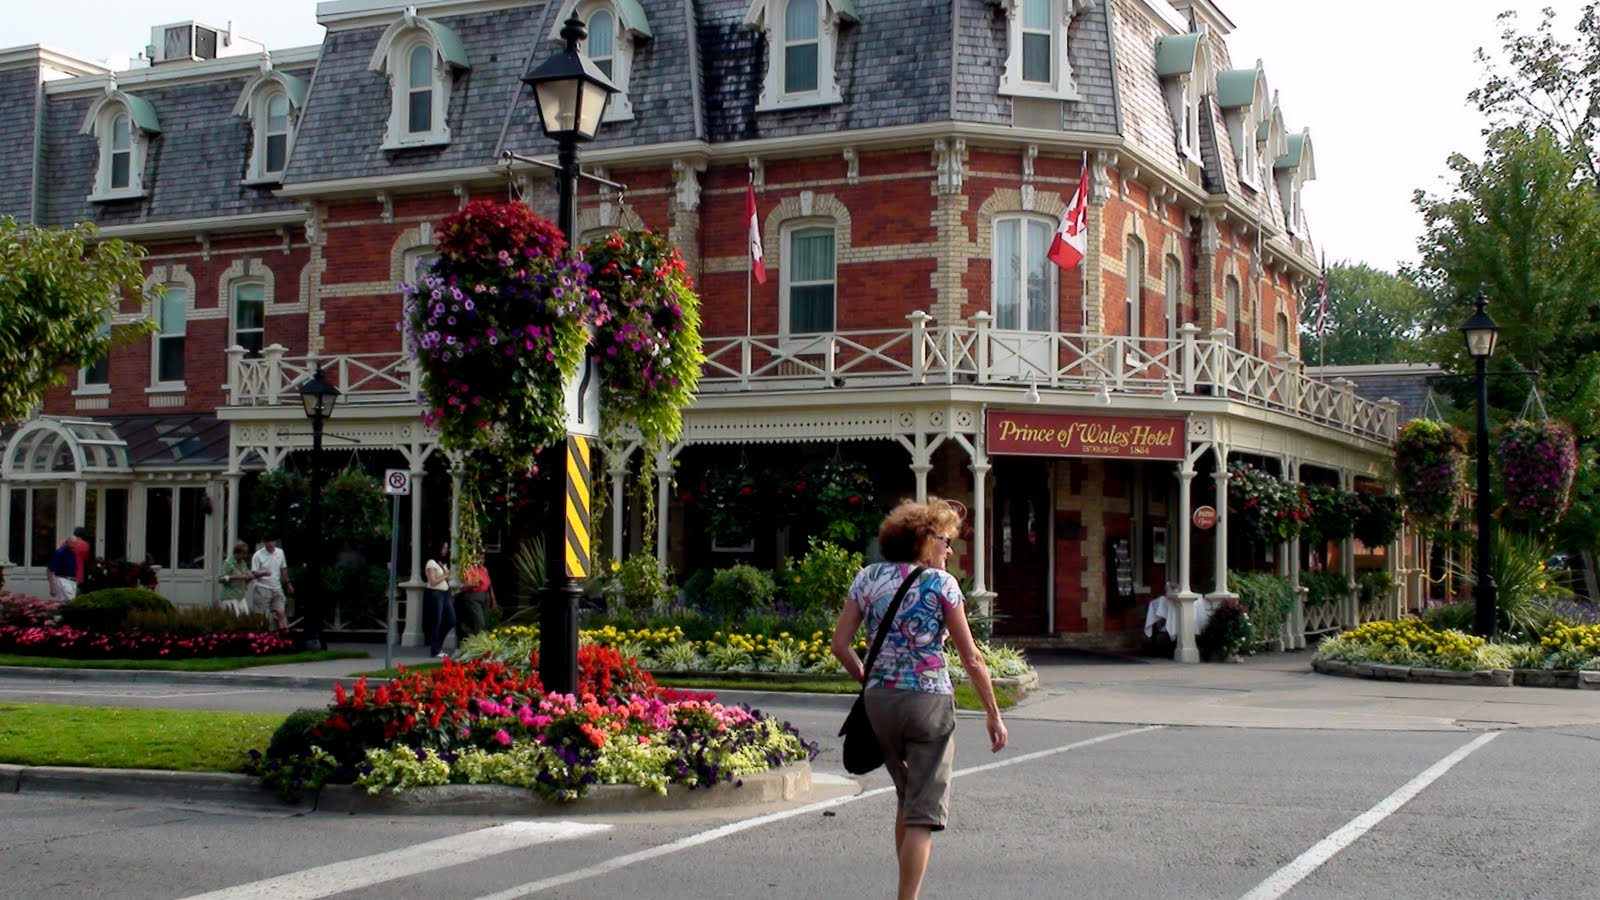 Niagara-on-the-lake is a very pretty city.